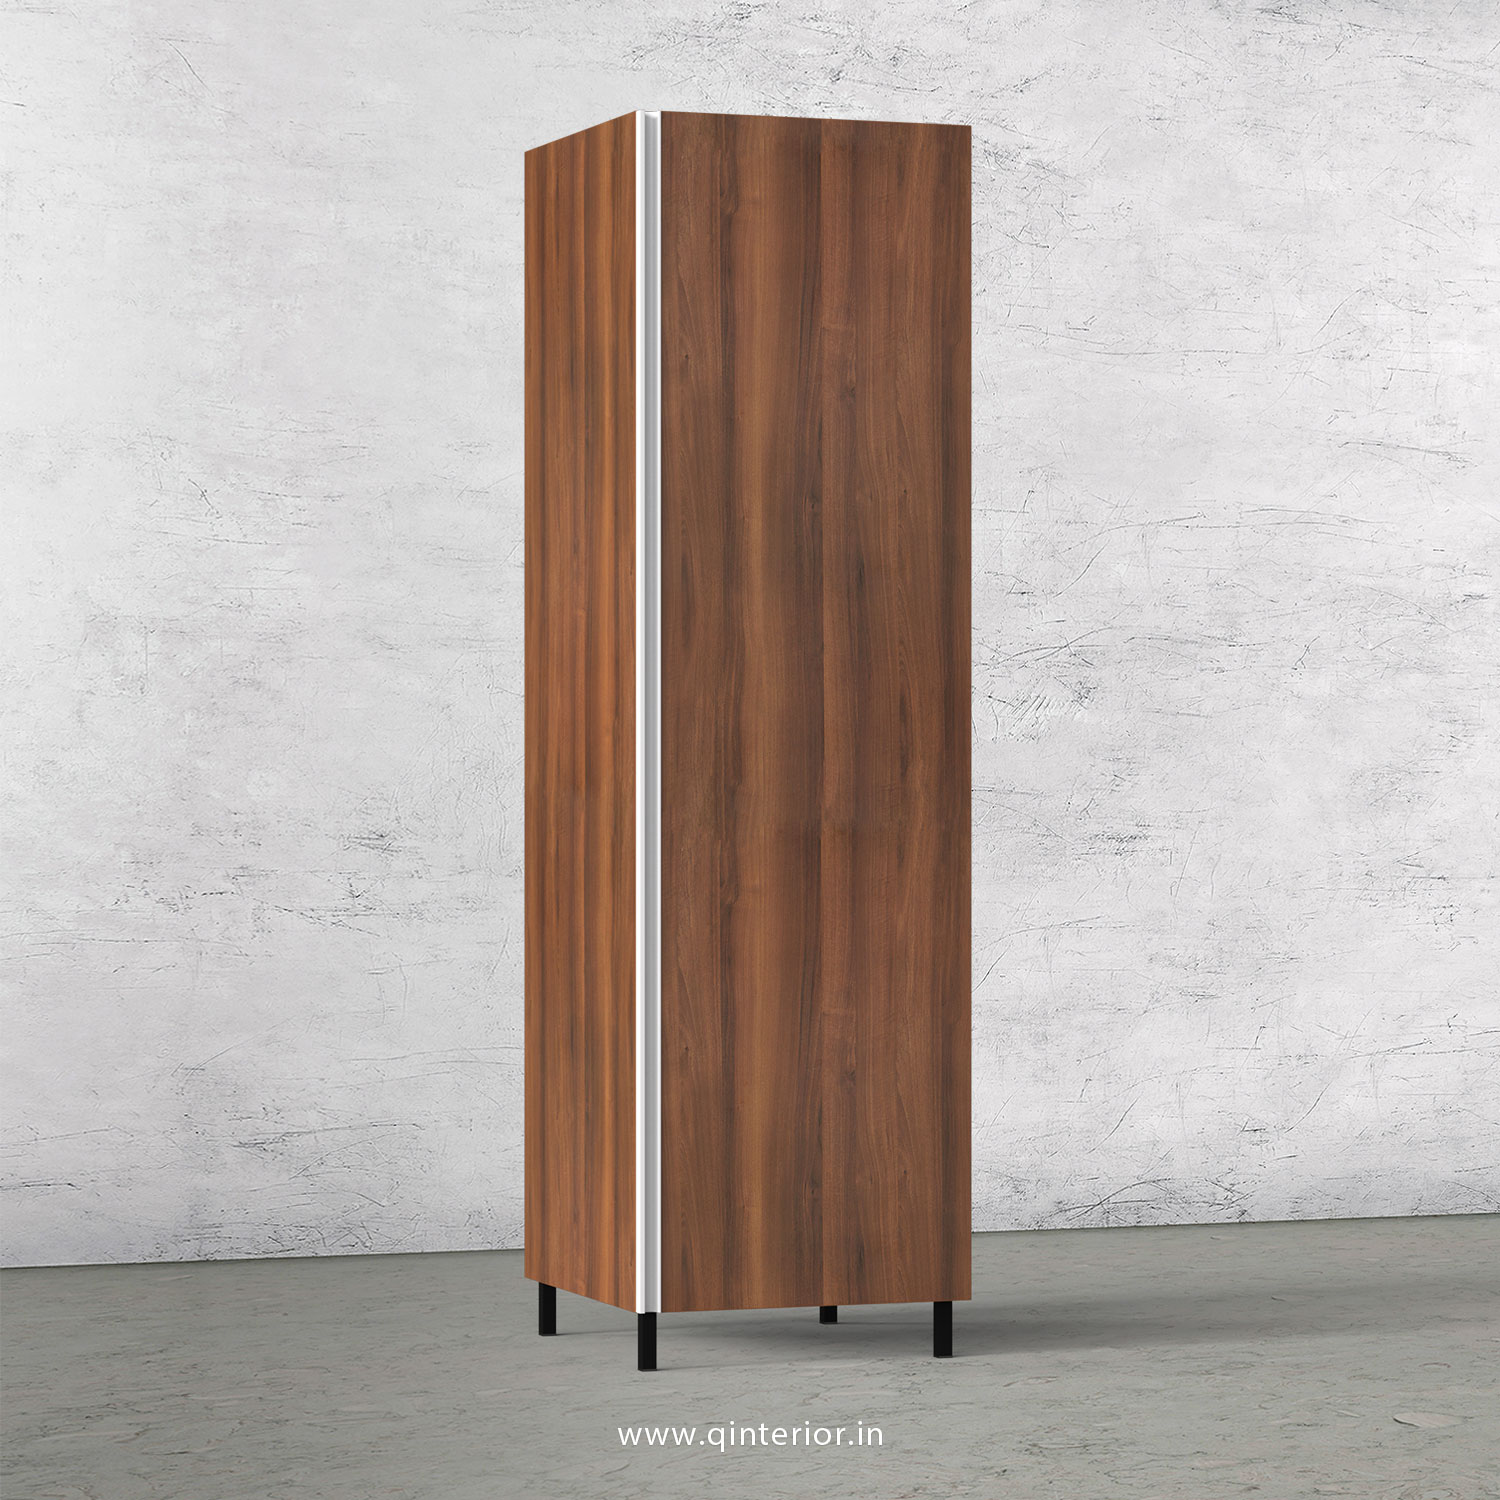 Stable Kitchen Tall Unit in Teak Finish - KTB801 C3